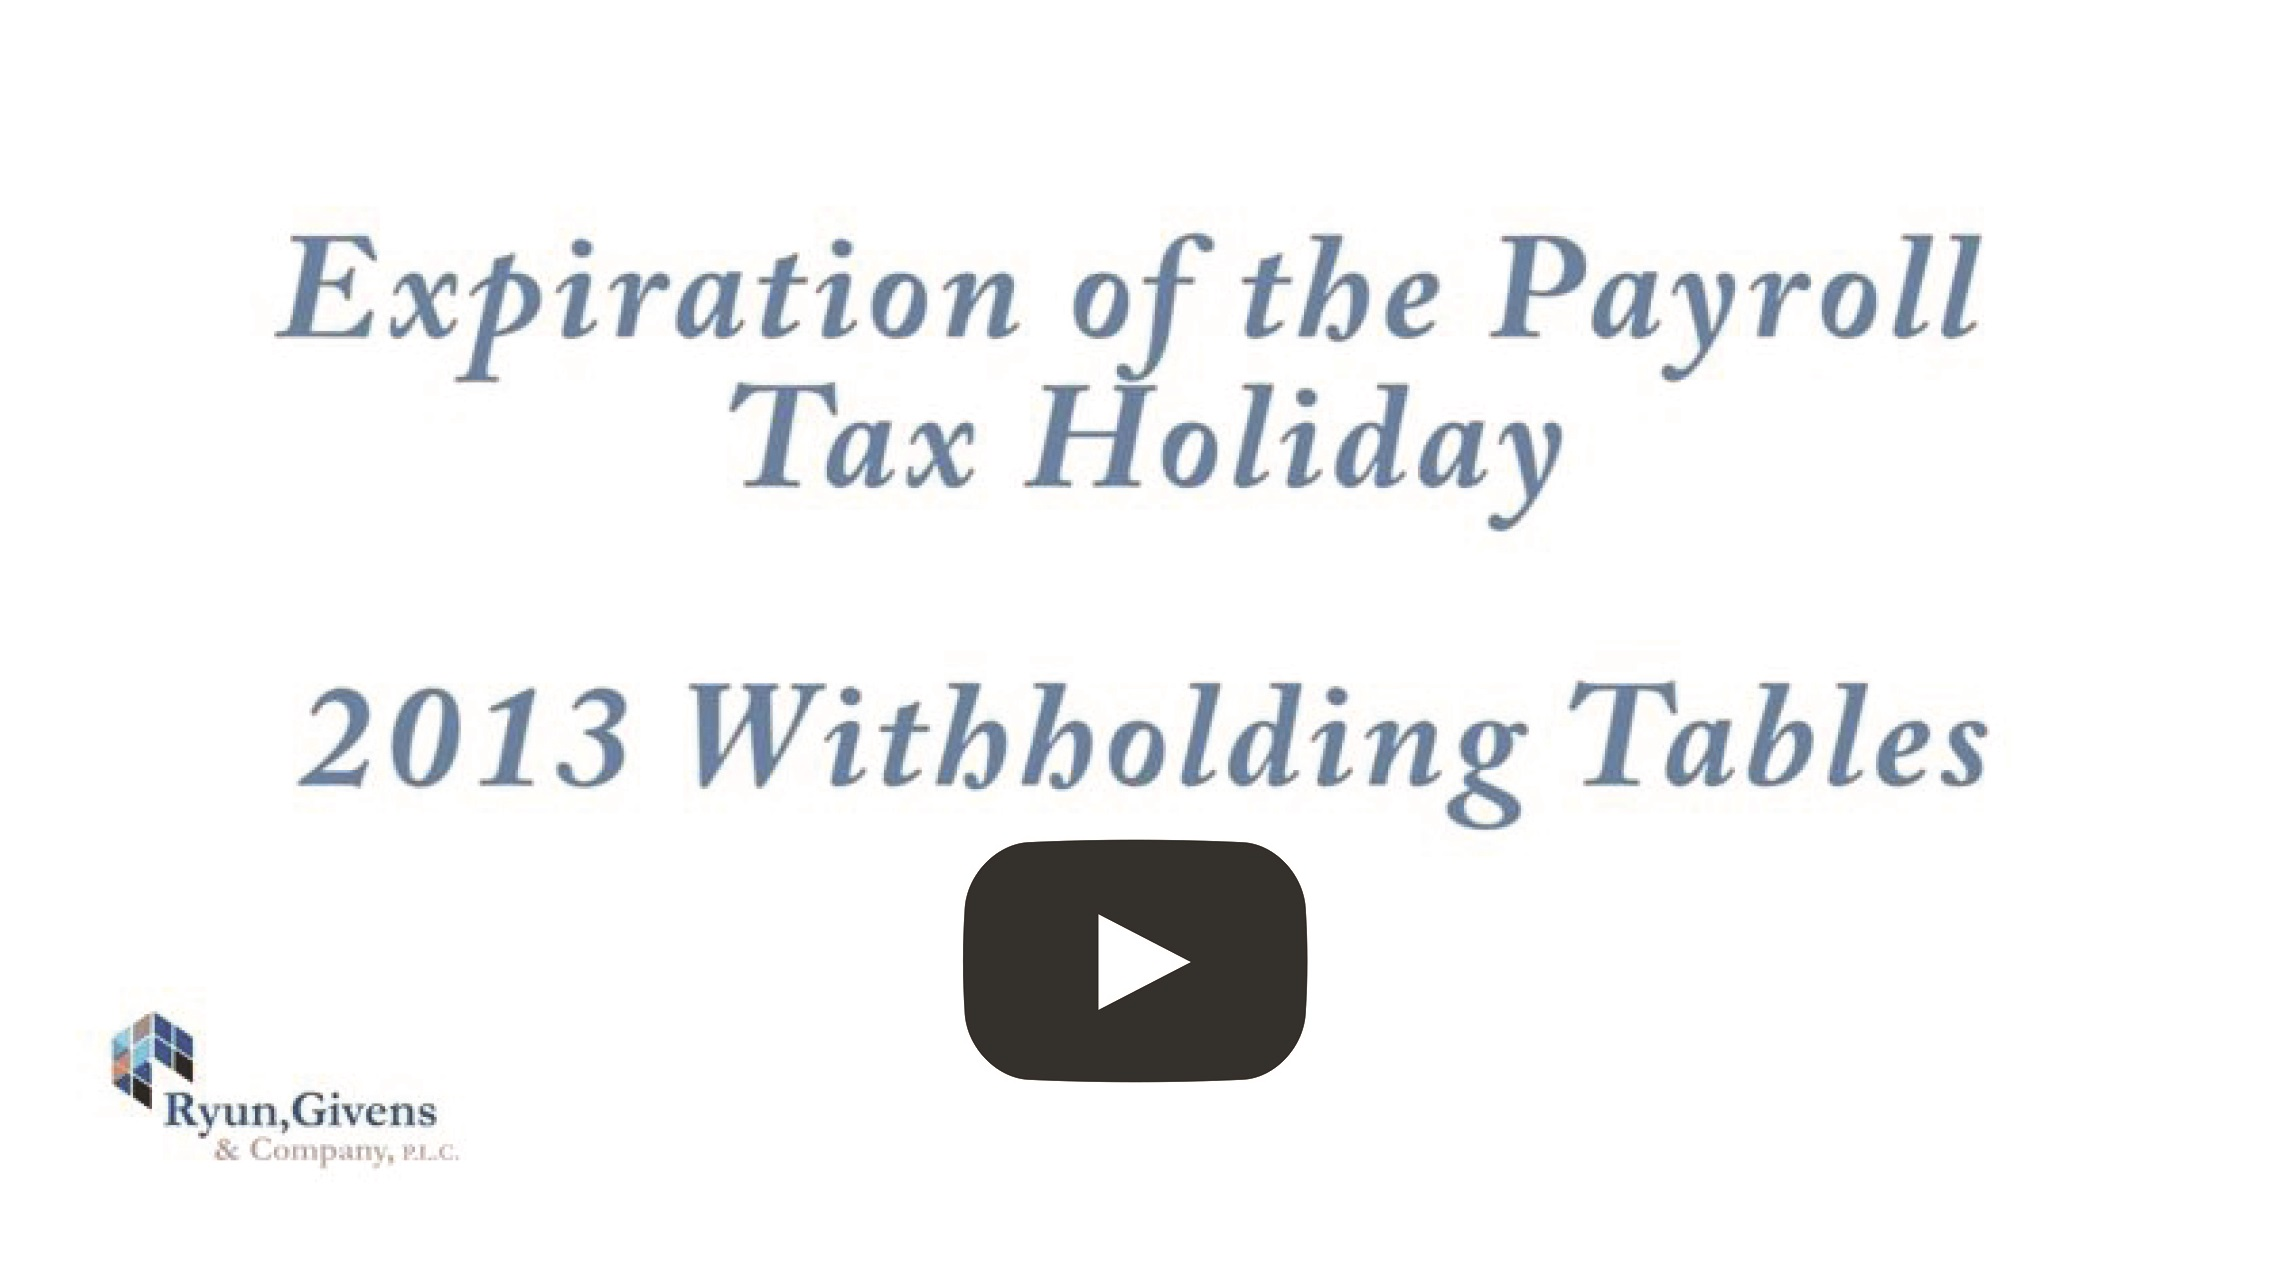 Expiration of the Payroll TaxHoliday